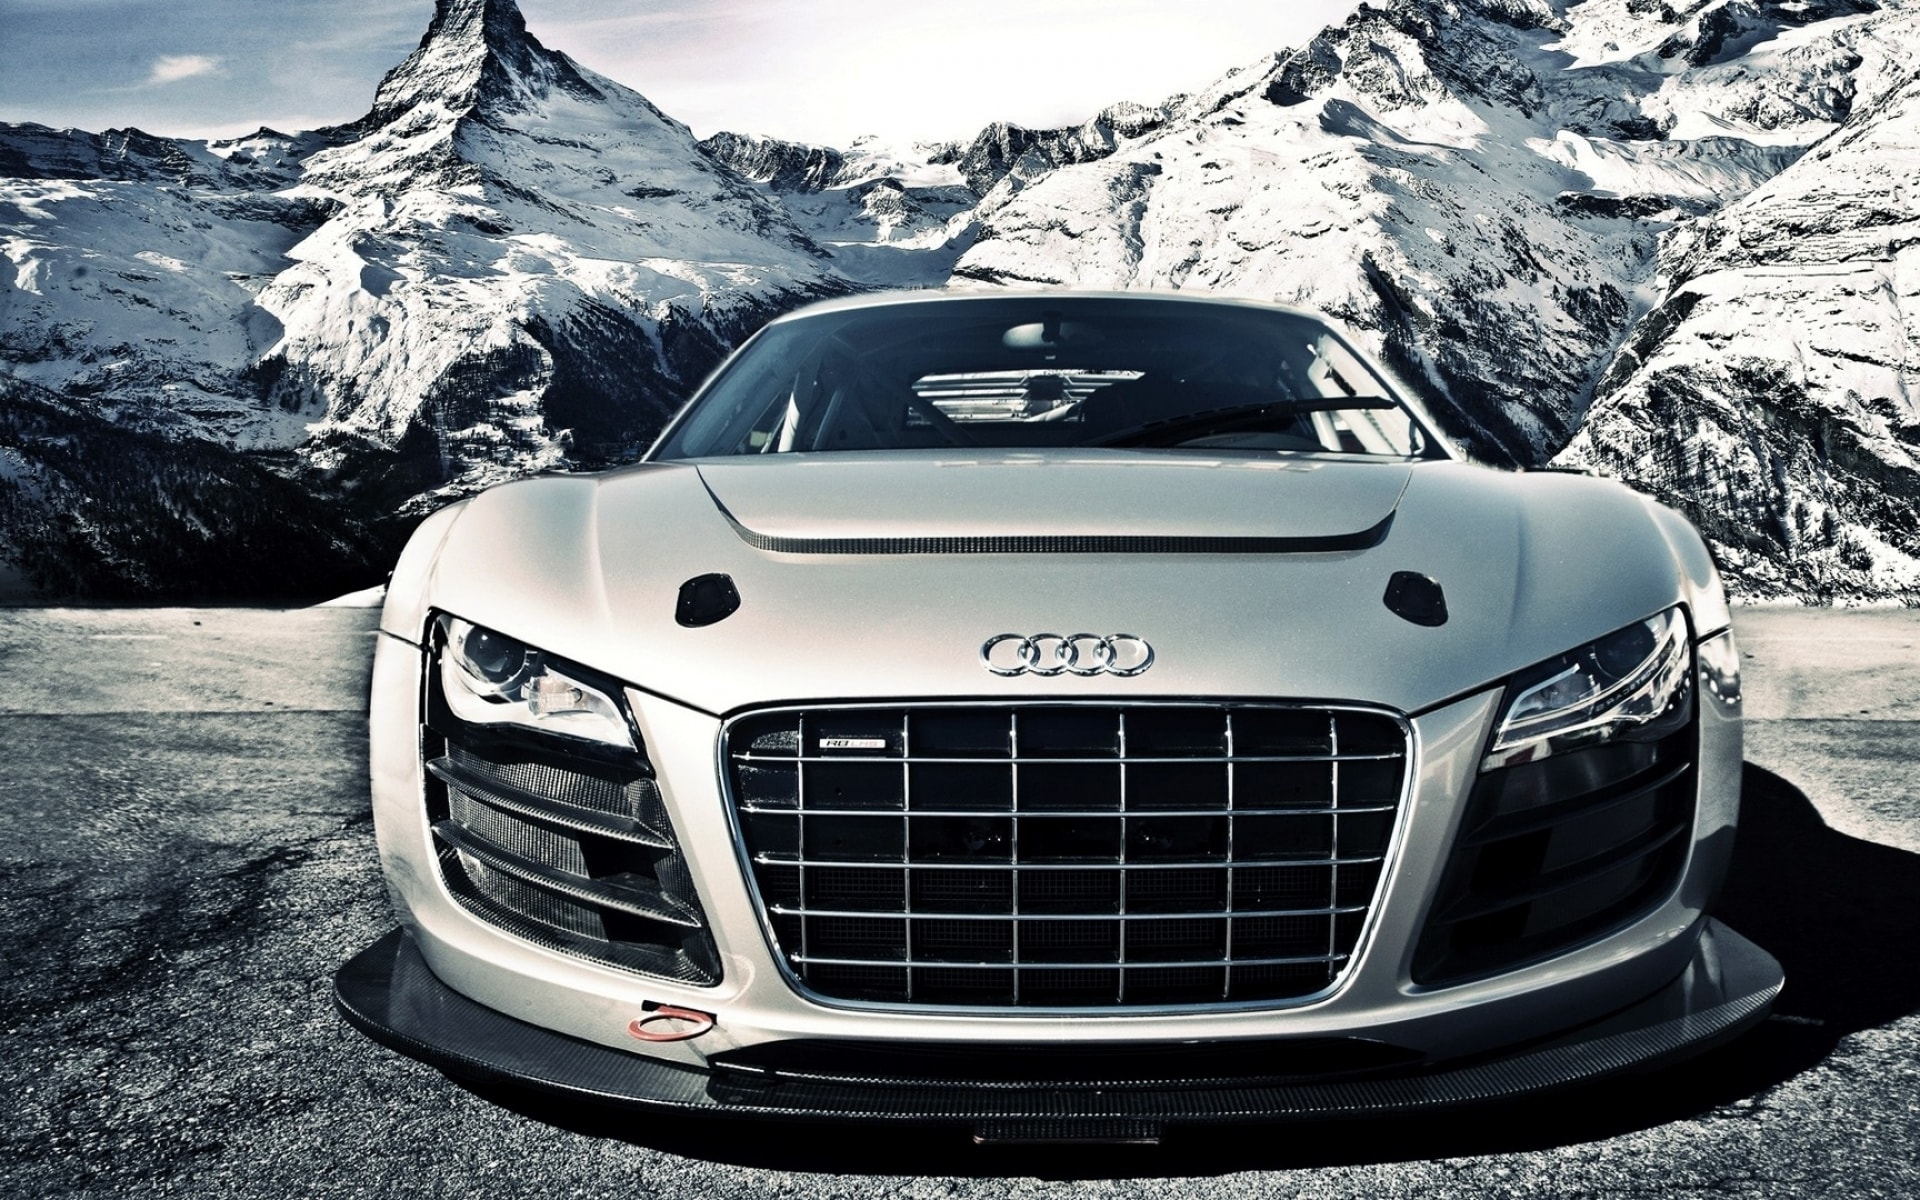 audi r8 hd desktop wallpapers | 7wallpapers